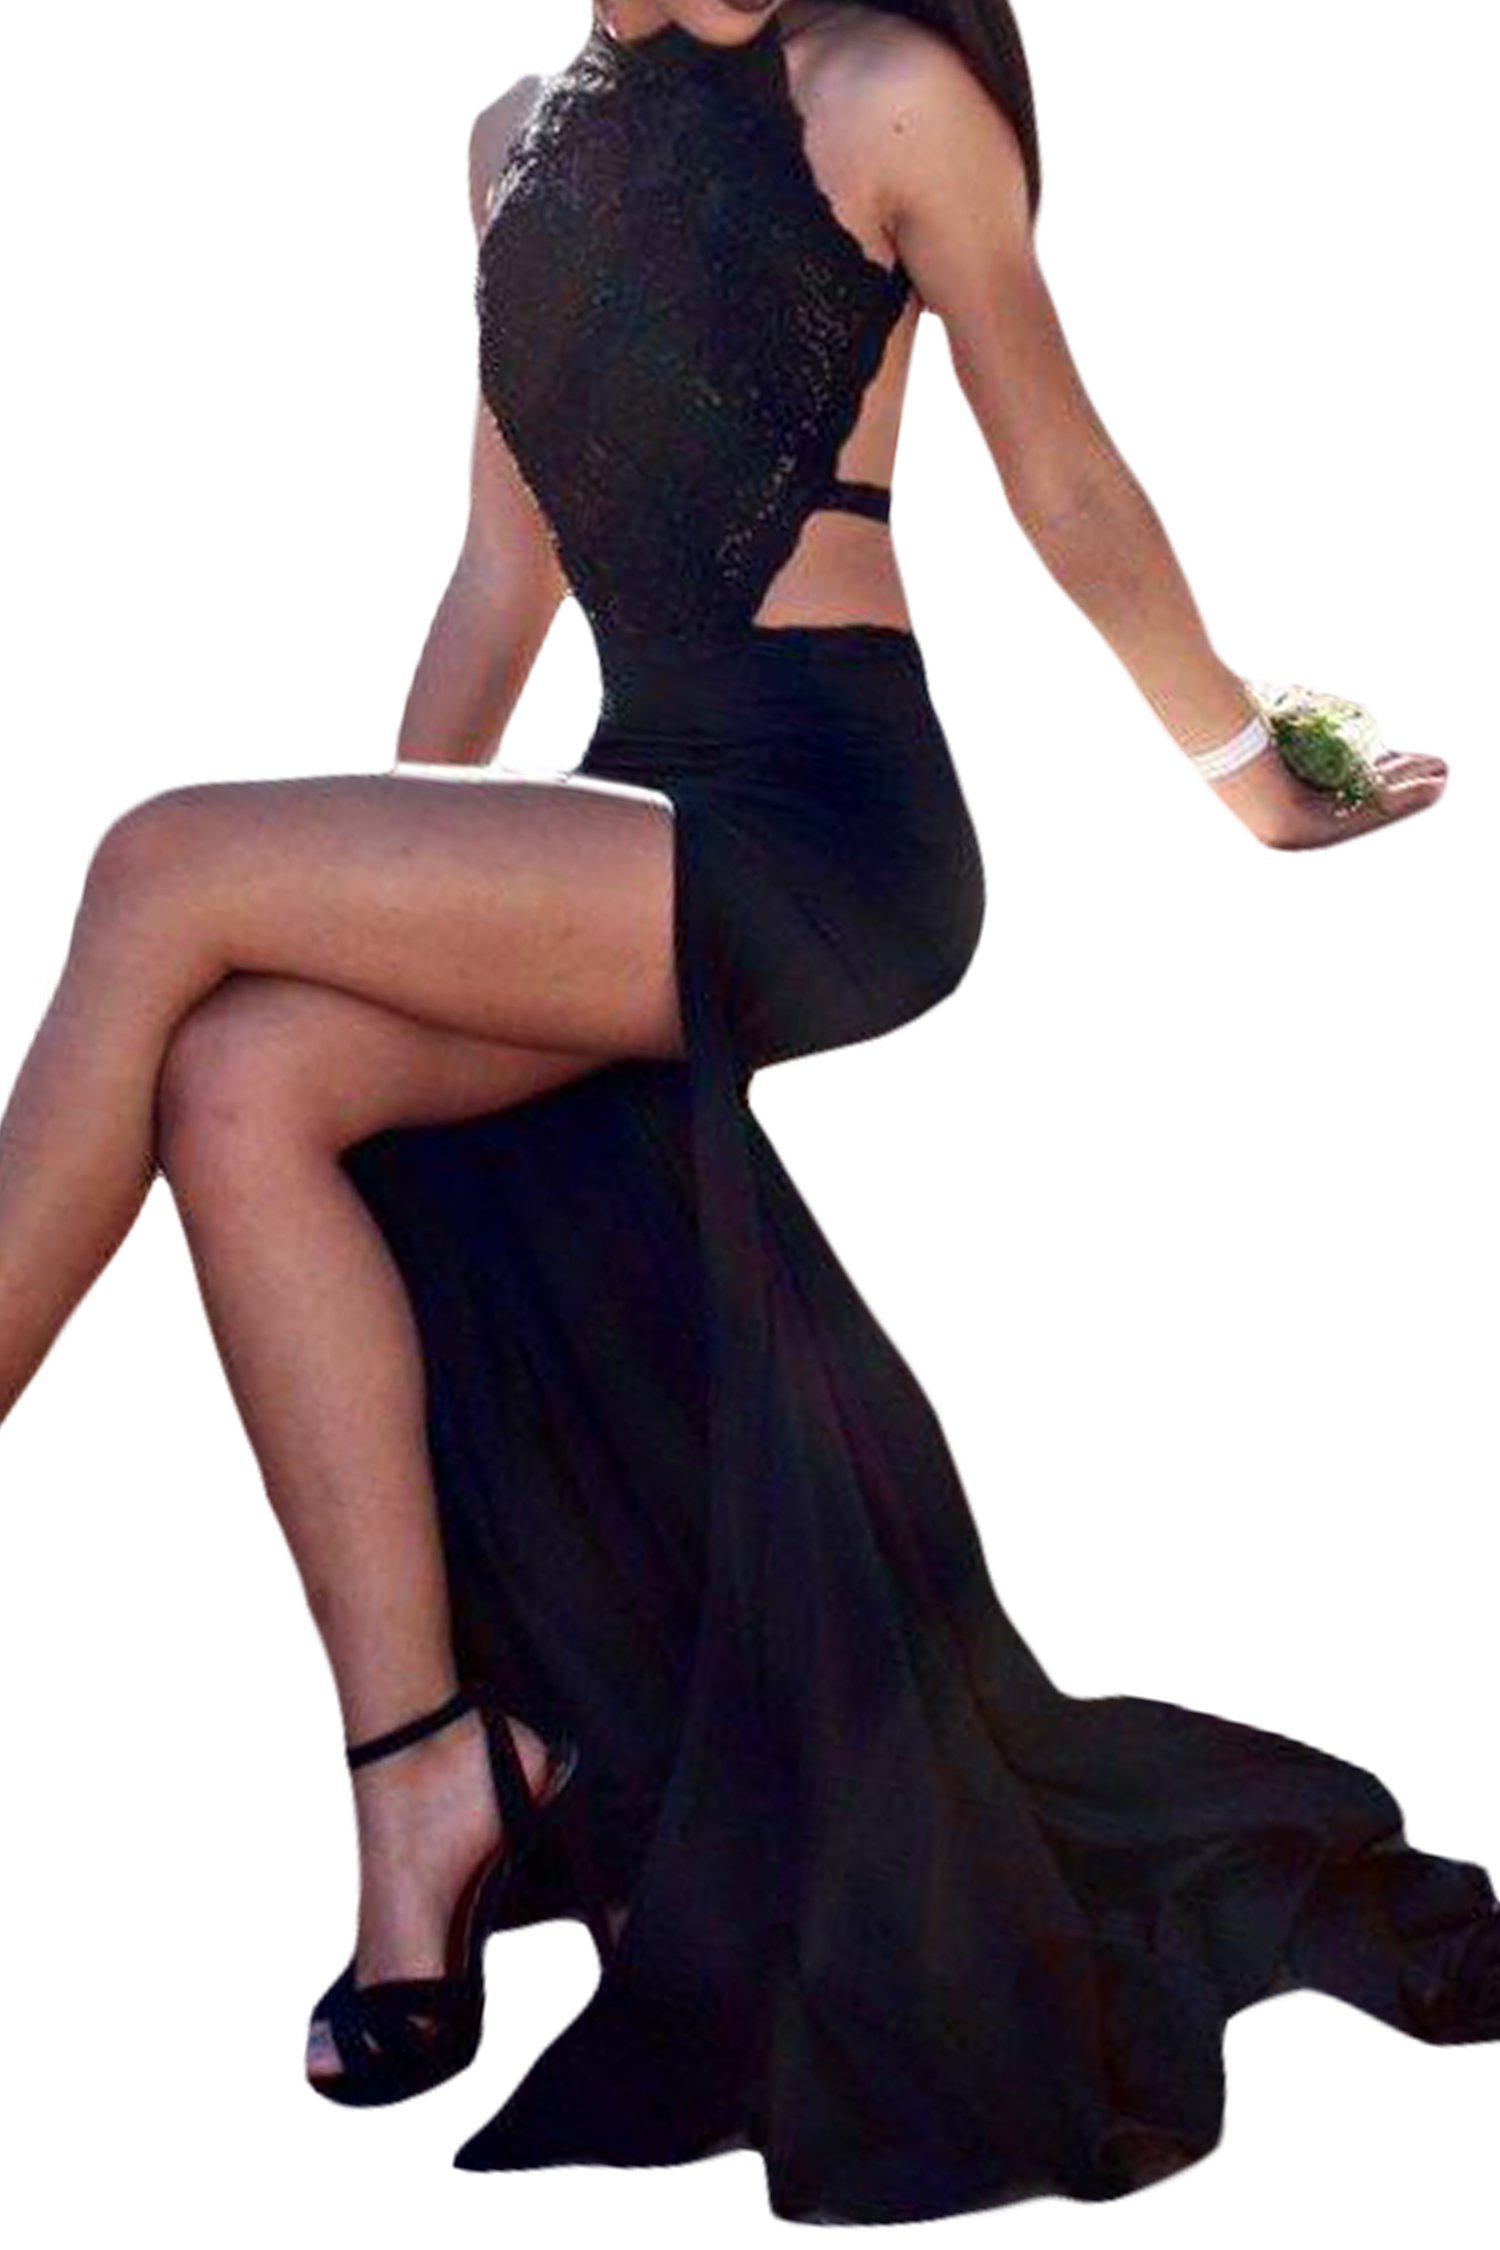 SeasonMall Women's Halter Open Back Spandex With Applique Mermaid Prom Dresses Black Size 6 by SeasonMall (Image #2)